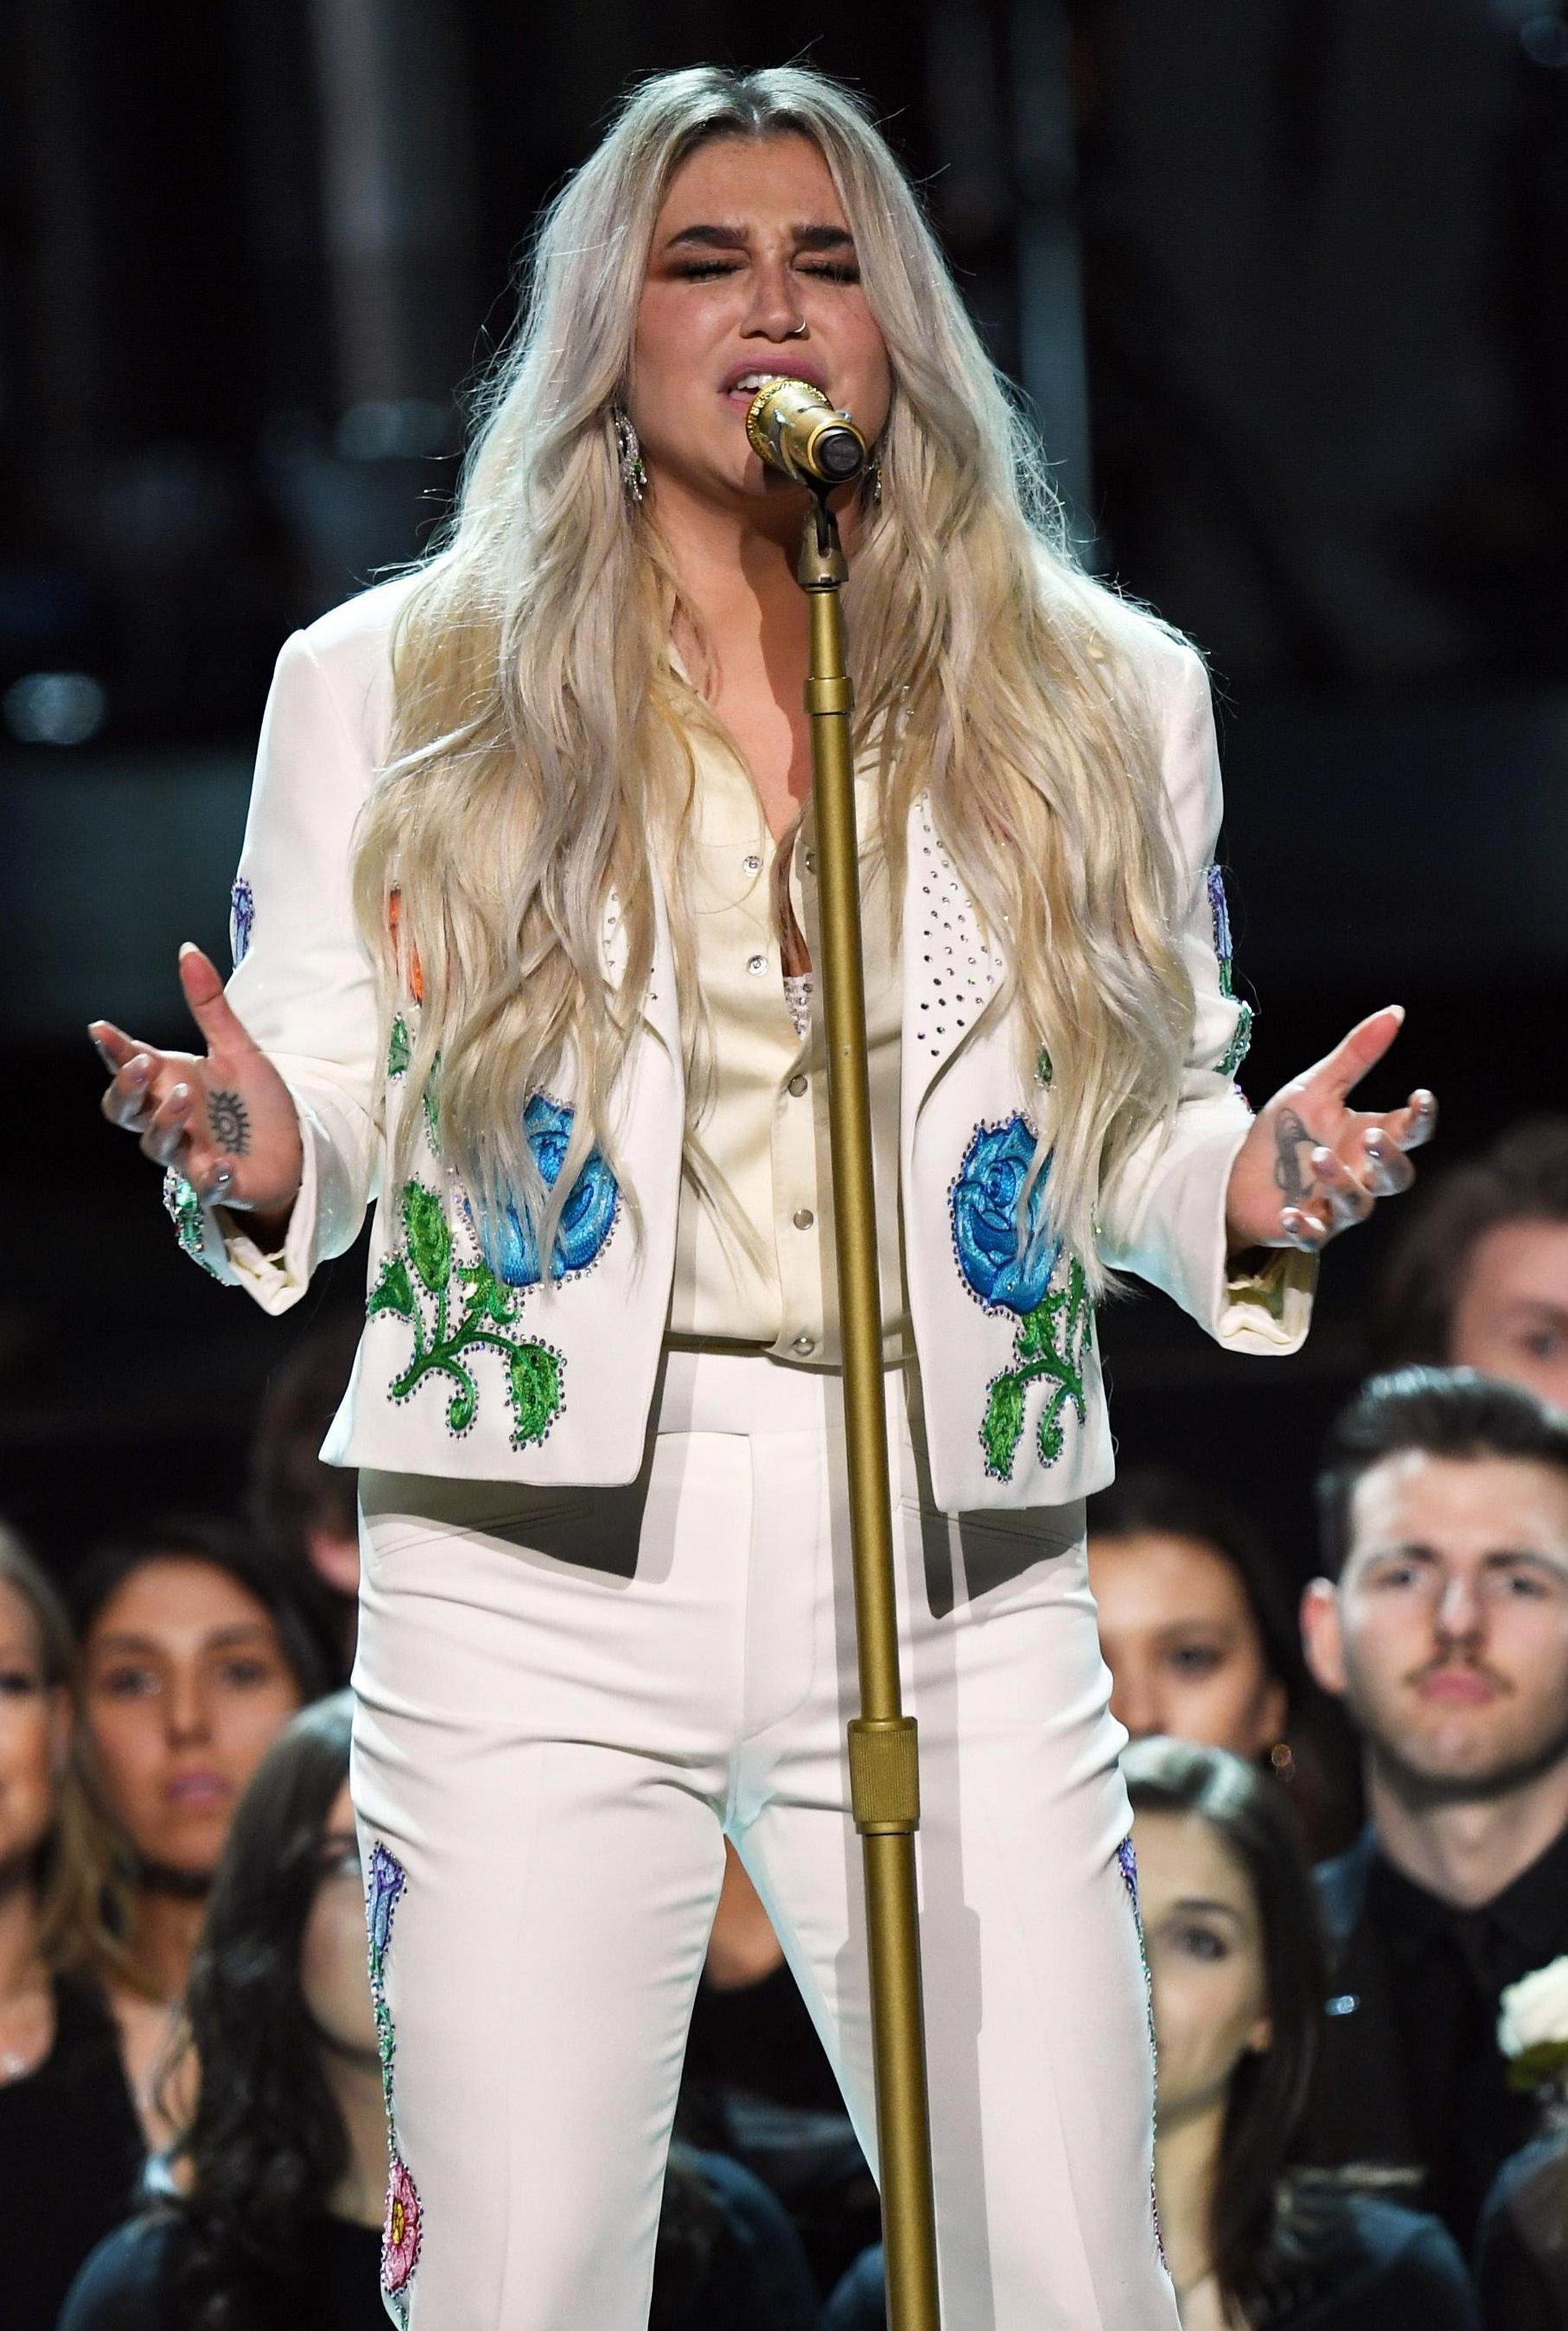 Who is Kesha, what did she sing at the Grammys 2018 and what allegations has she made against Dr Luke?